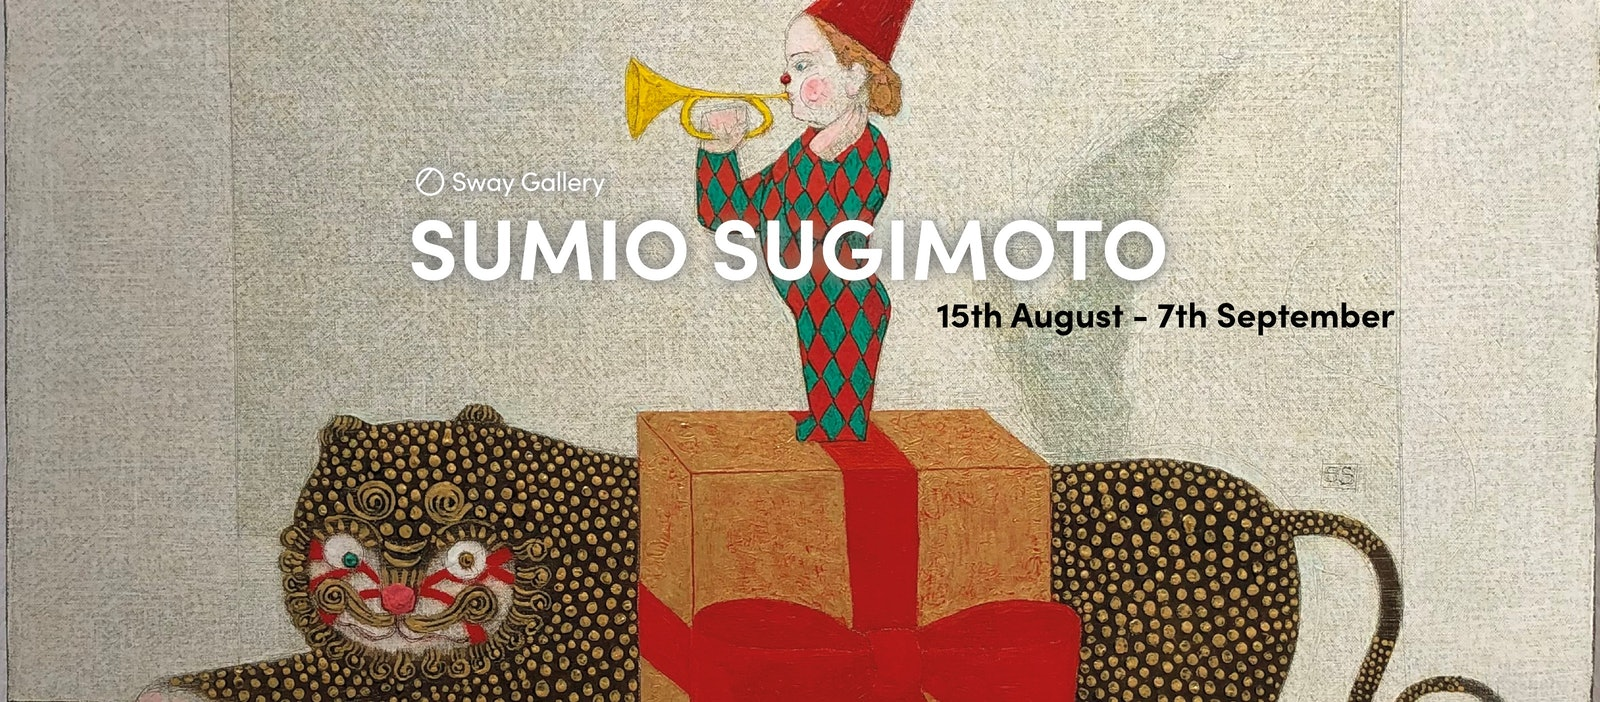 SUMIO SUGIMOTO // 15 August - 7 September 2019